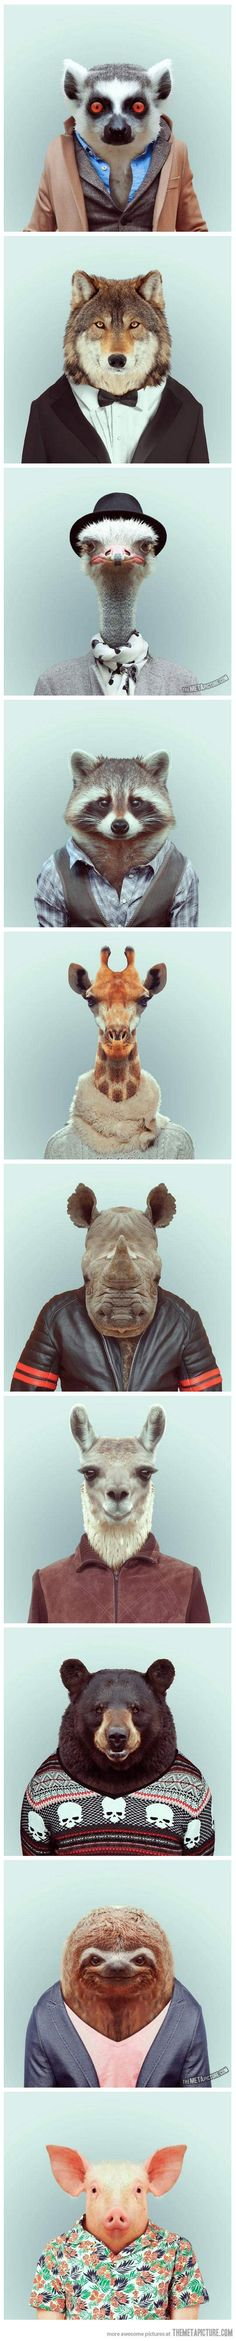 Funny portraits of animals dressed like humans…